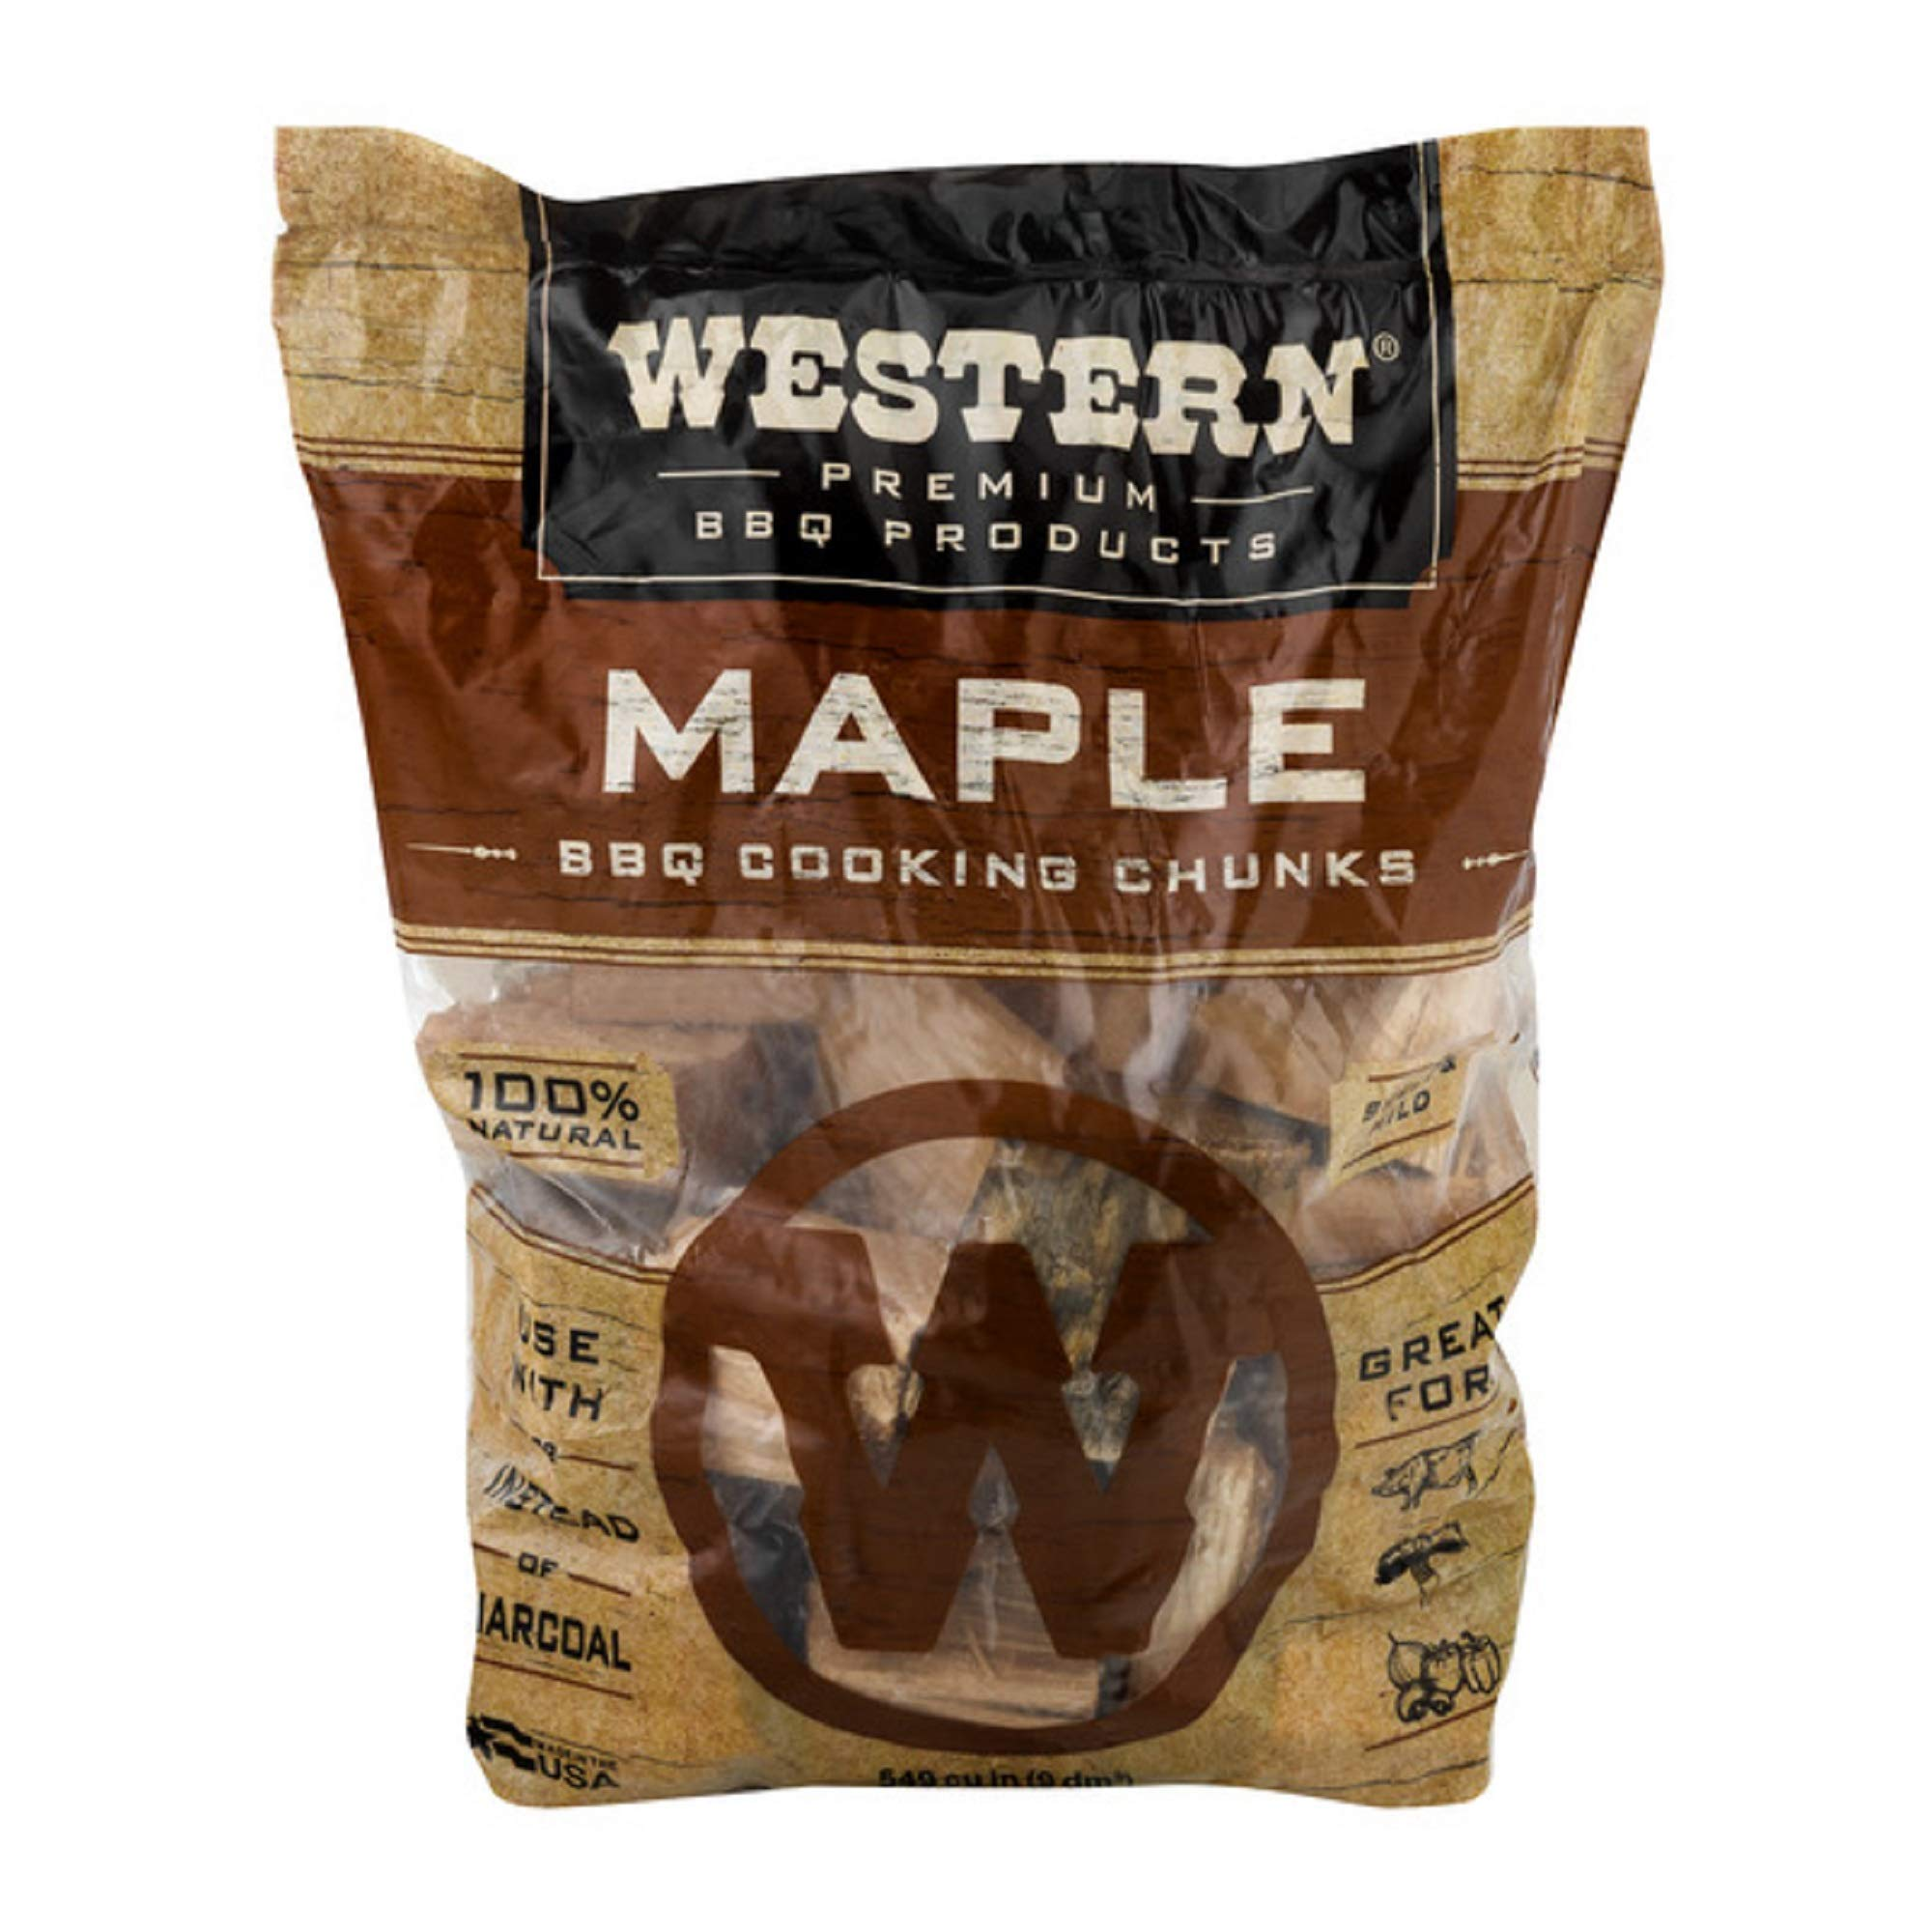 Western Premium BBQ Products Maple Cooking Chunks, 549 cu inch product image